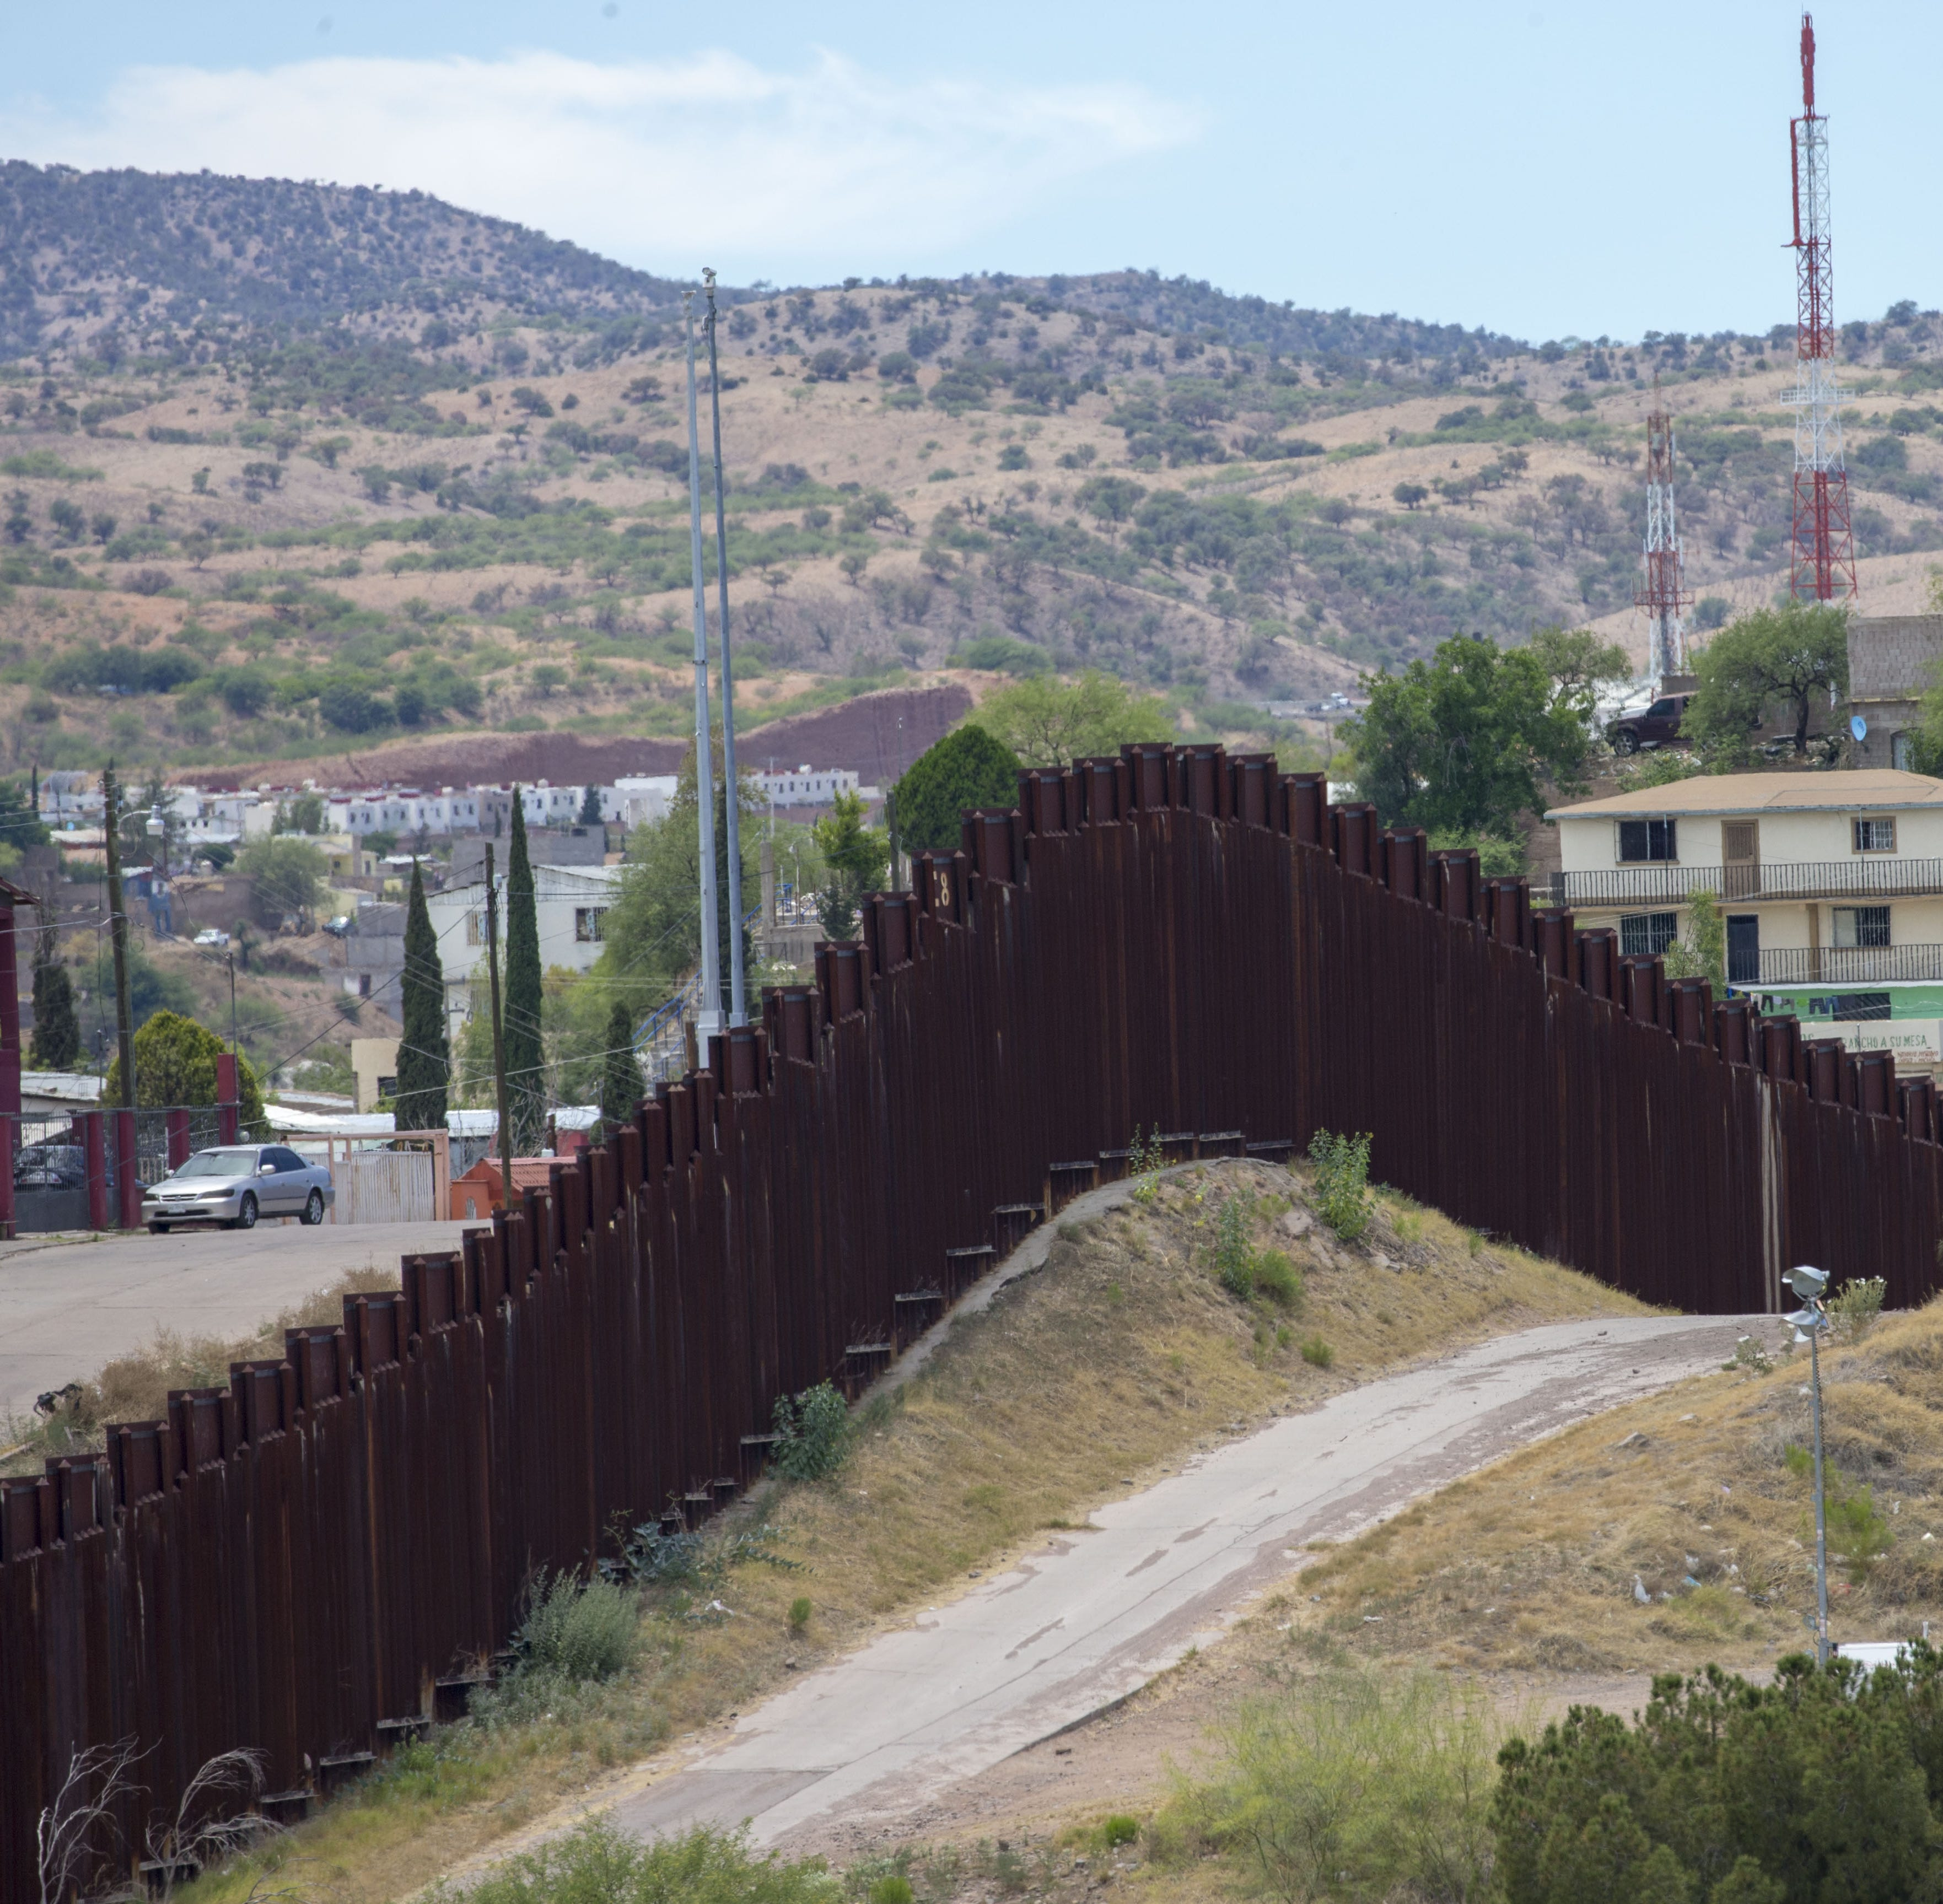 Migrant families apprehended in El Paso were transported, released in Tucson